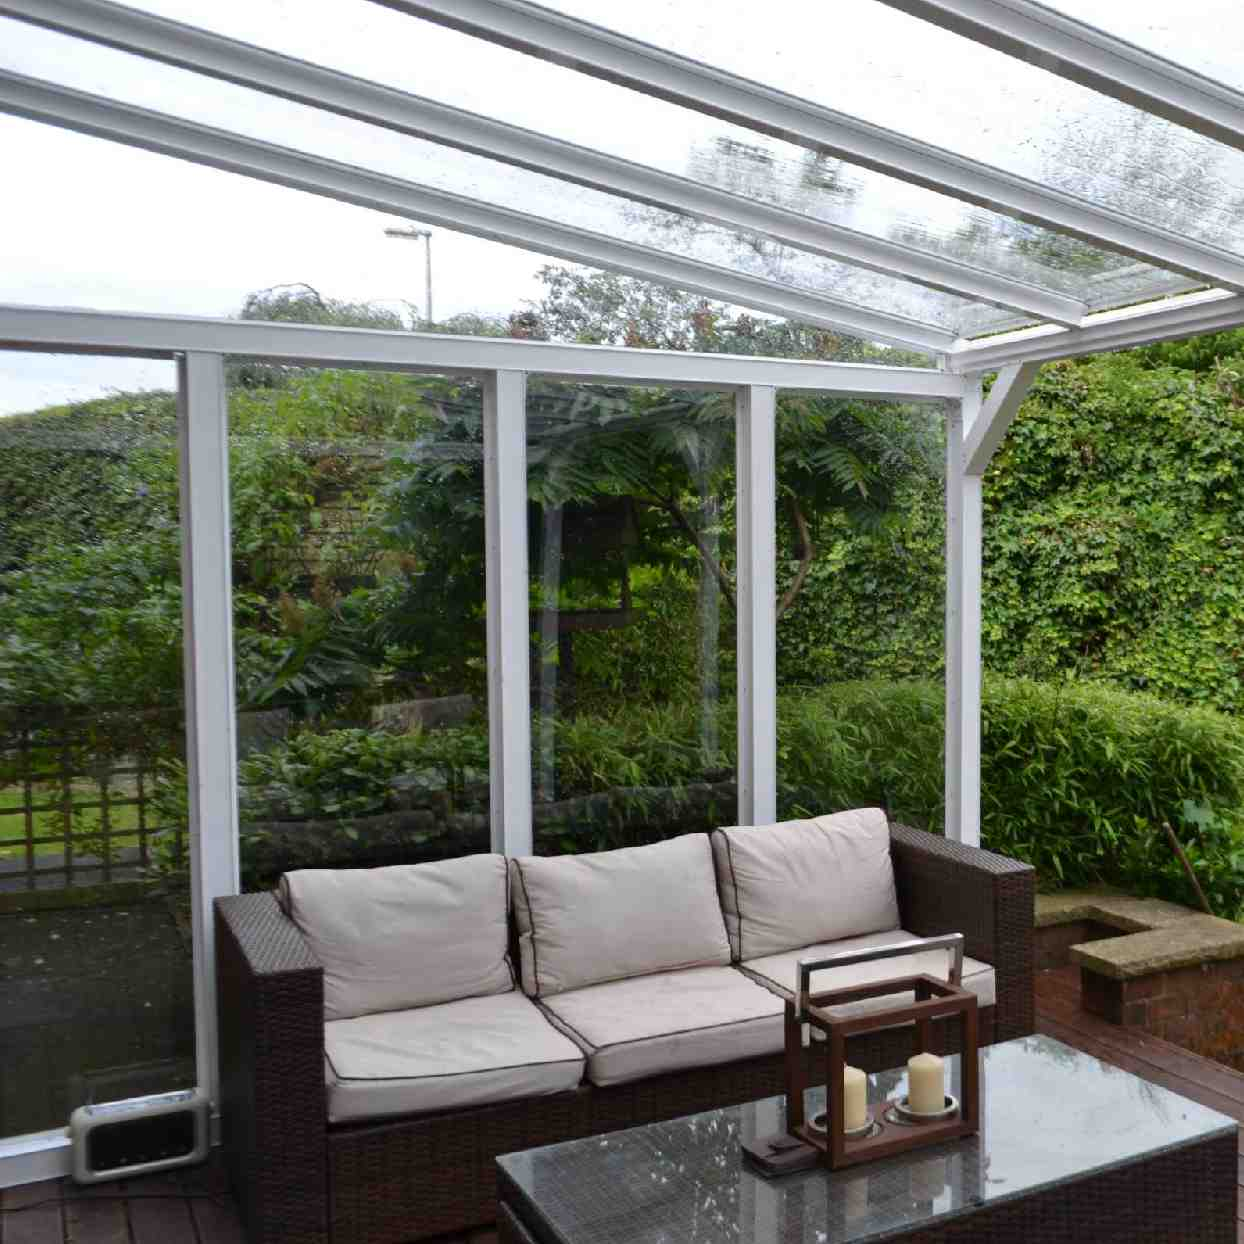 Buy Omega Verandah with 6mm Glass Clear Plate Polycarbonate Glazing - 2.8m (W) x 1.5m (P), (2) Supporting Posts online today